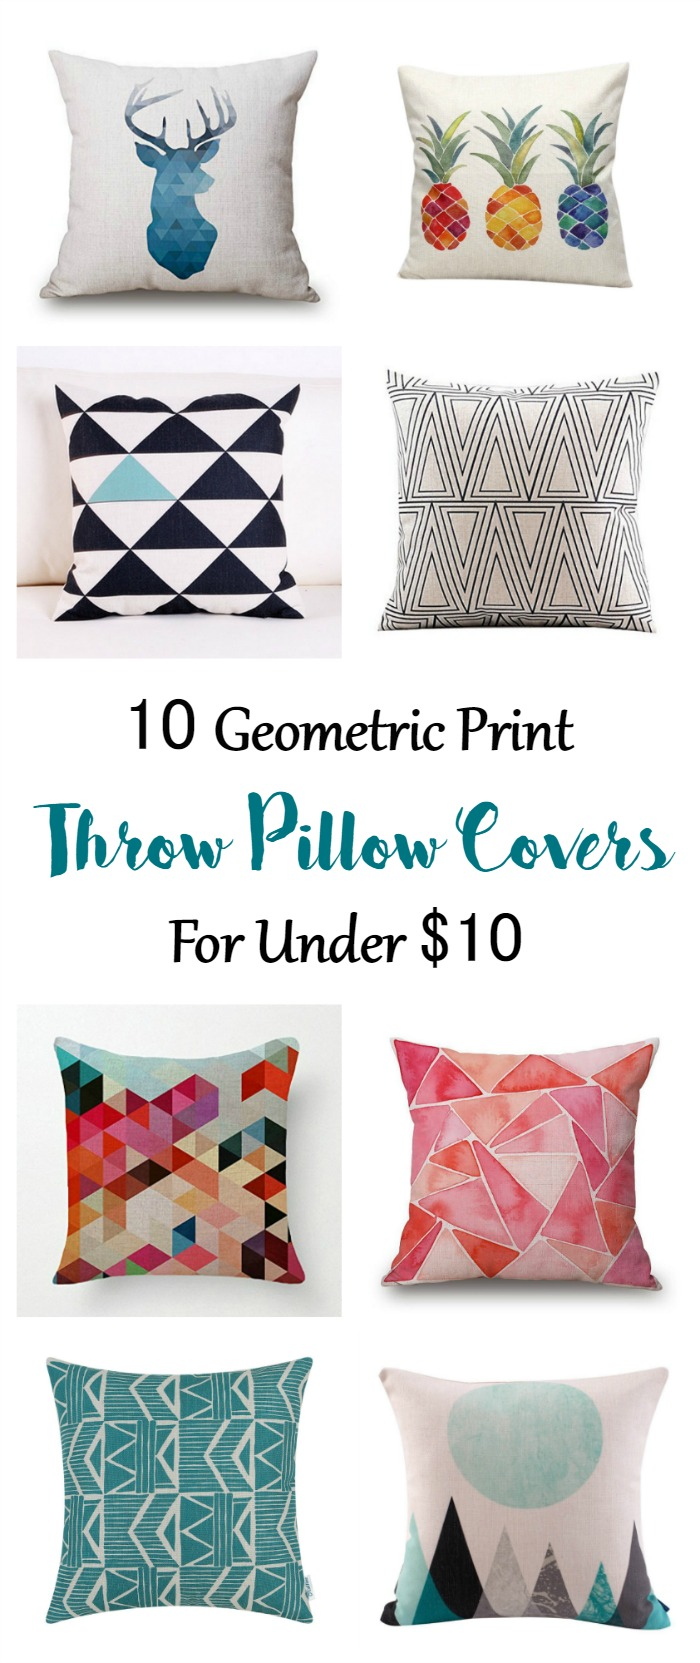 Geometric print pillow covers for under $10.